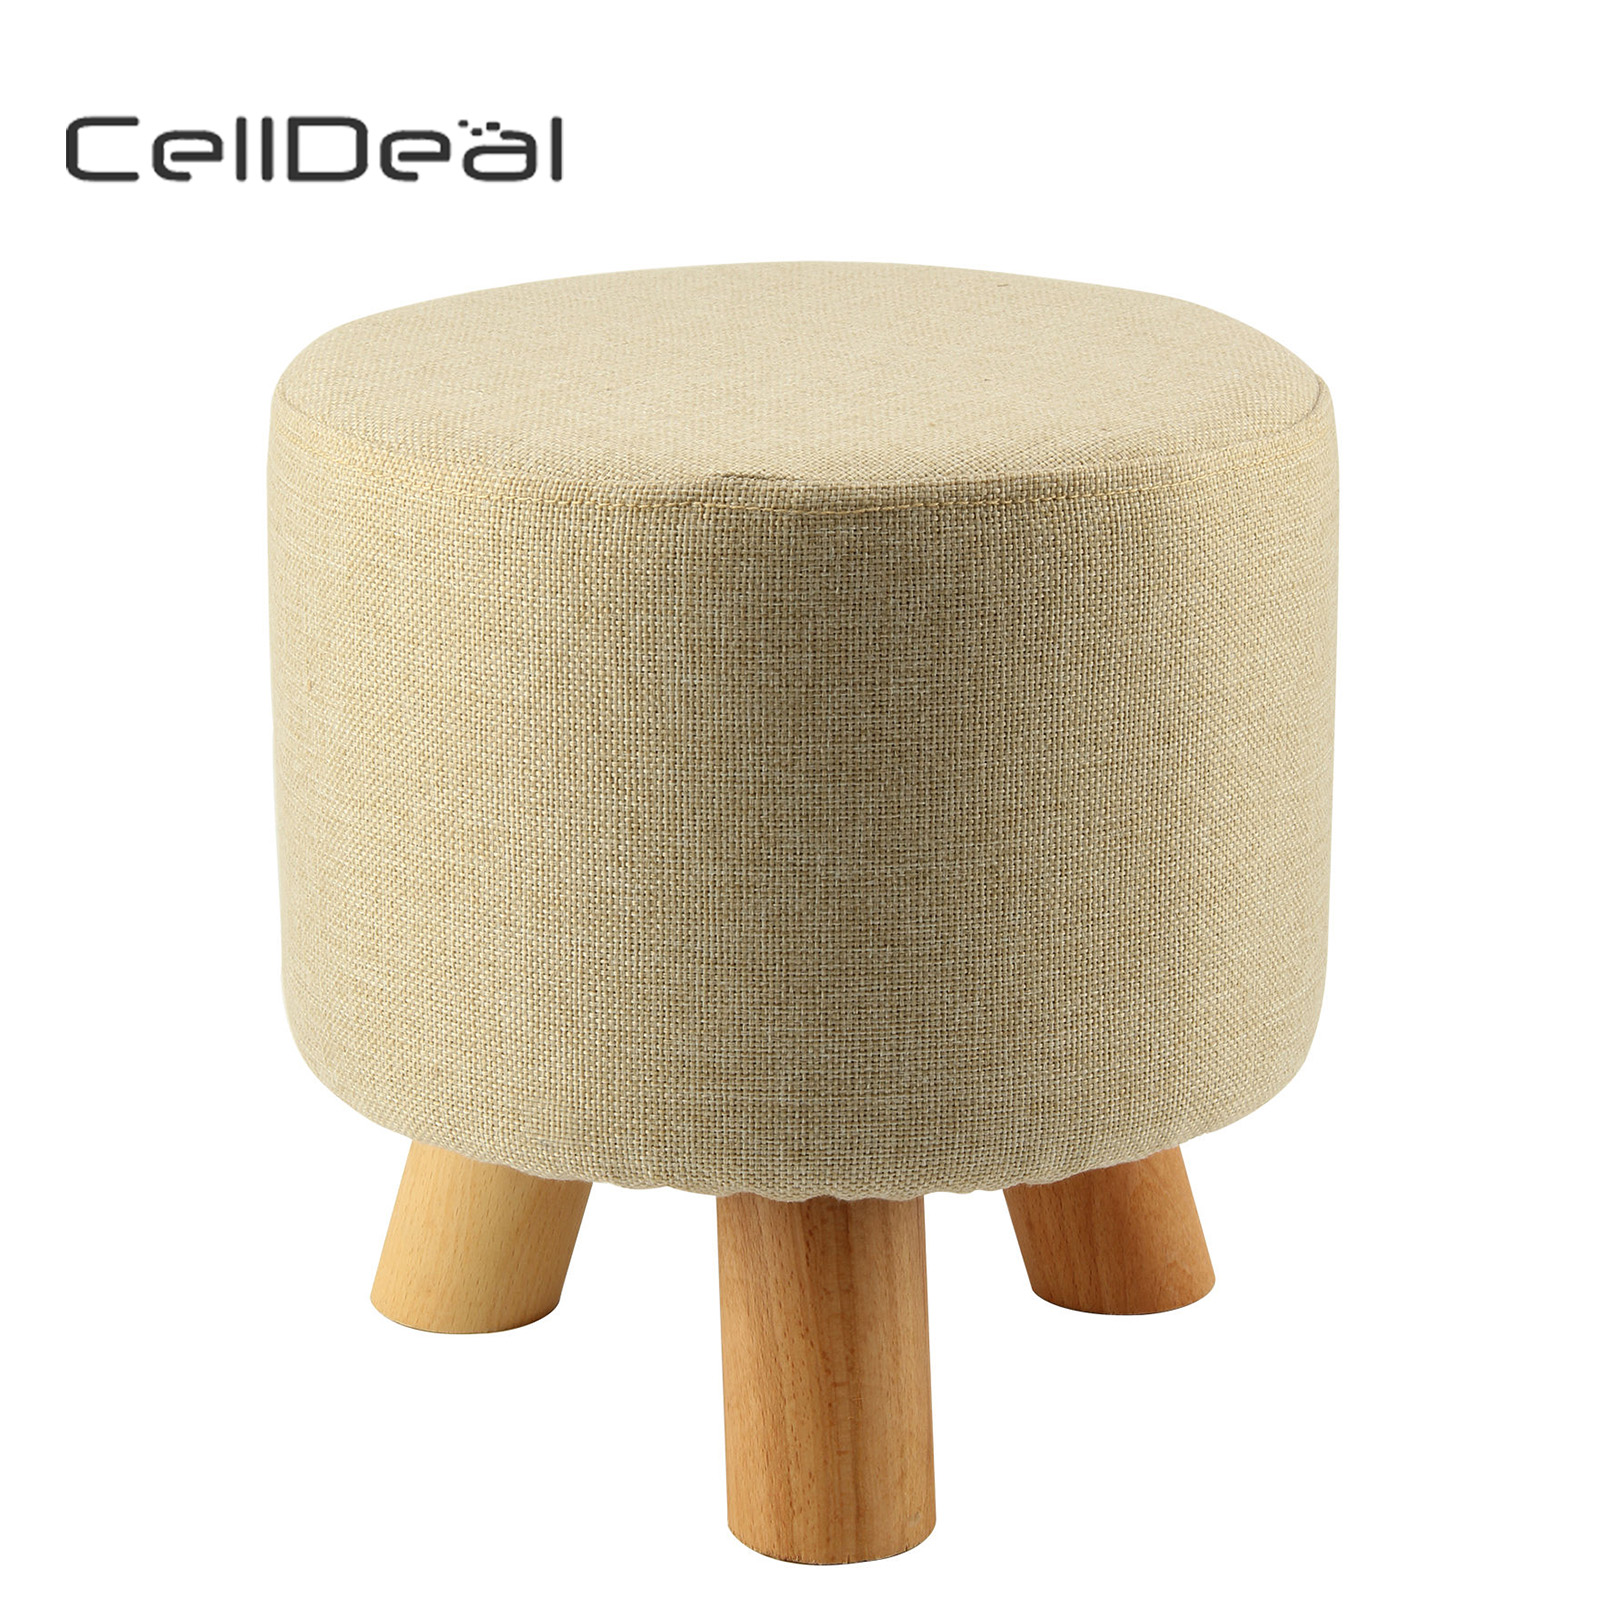 Linen Color Round Triangular Modern Footstool Ottoman Round Stool + Wooden Leg Bench Lattice Foot Stool